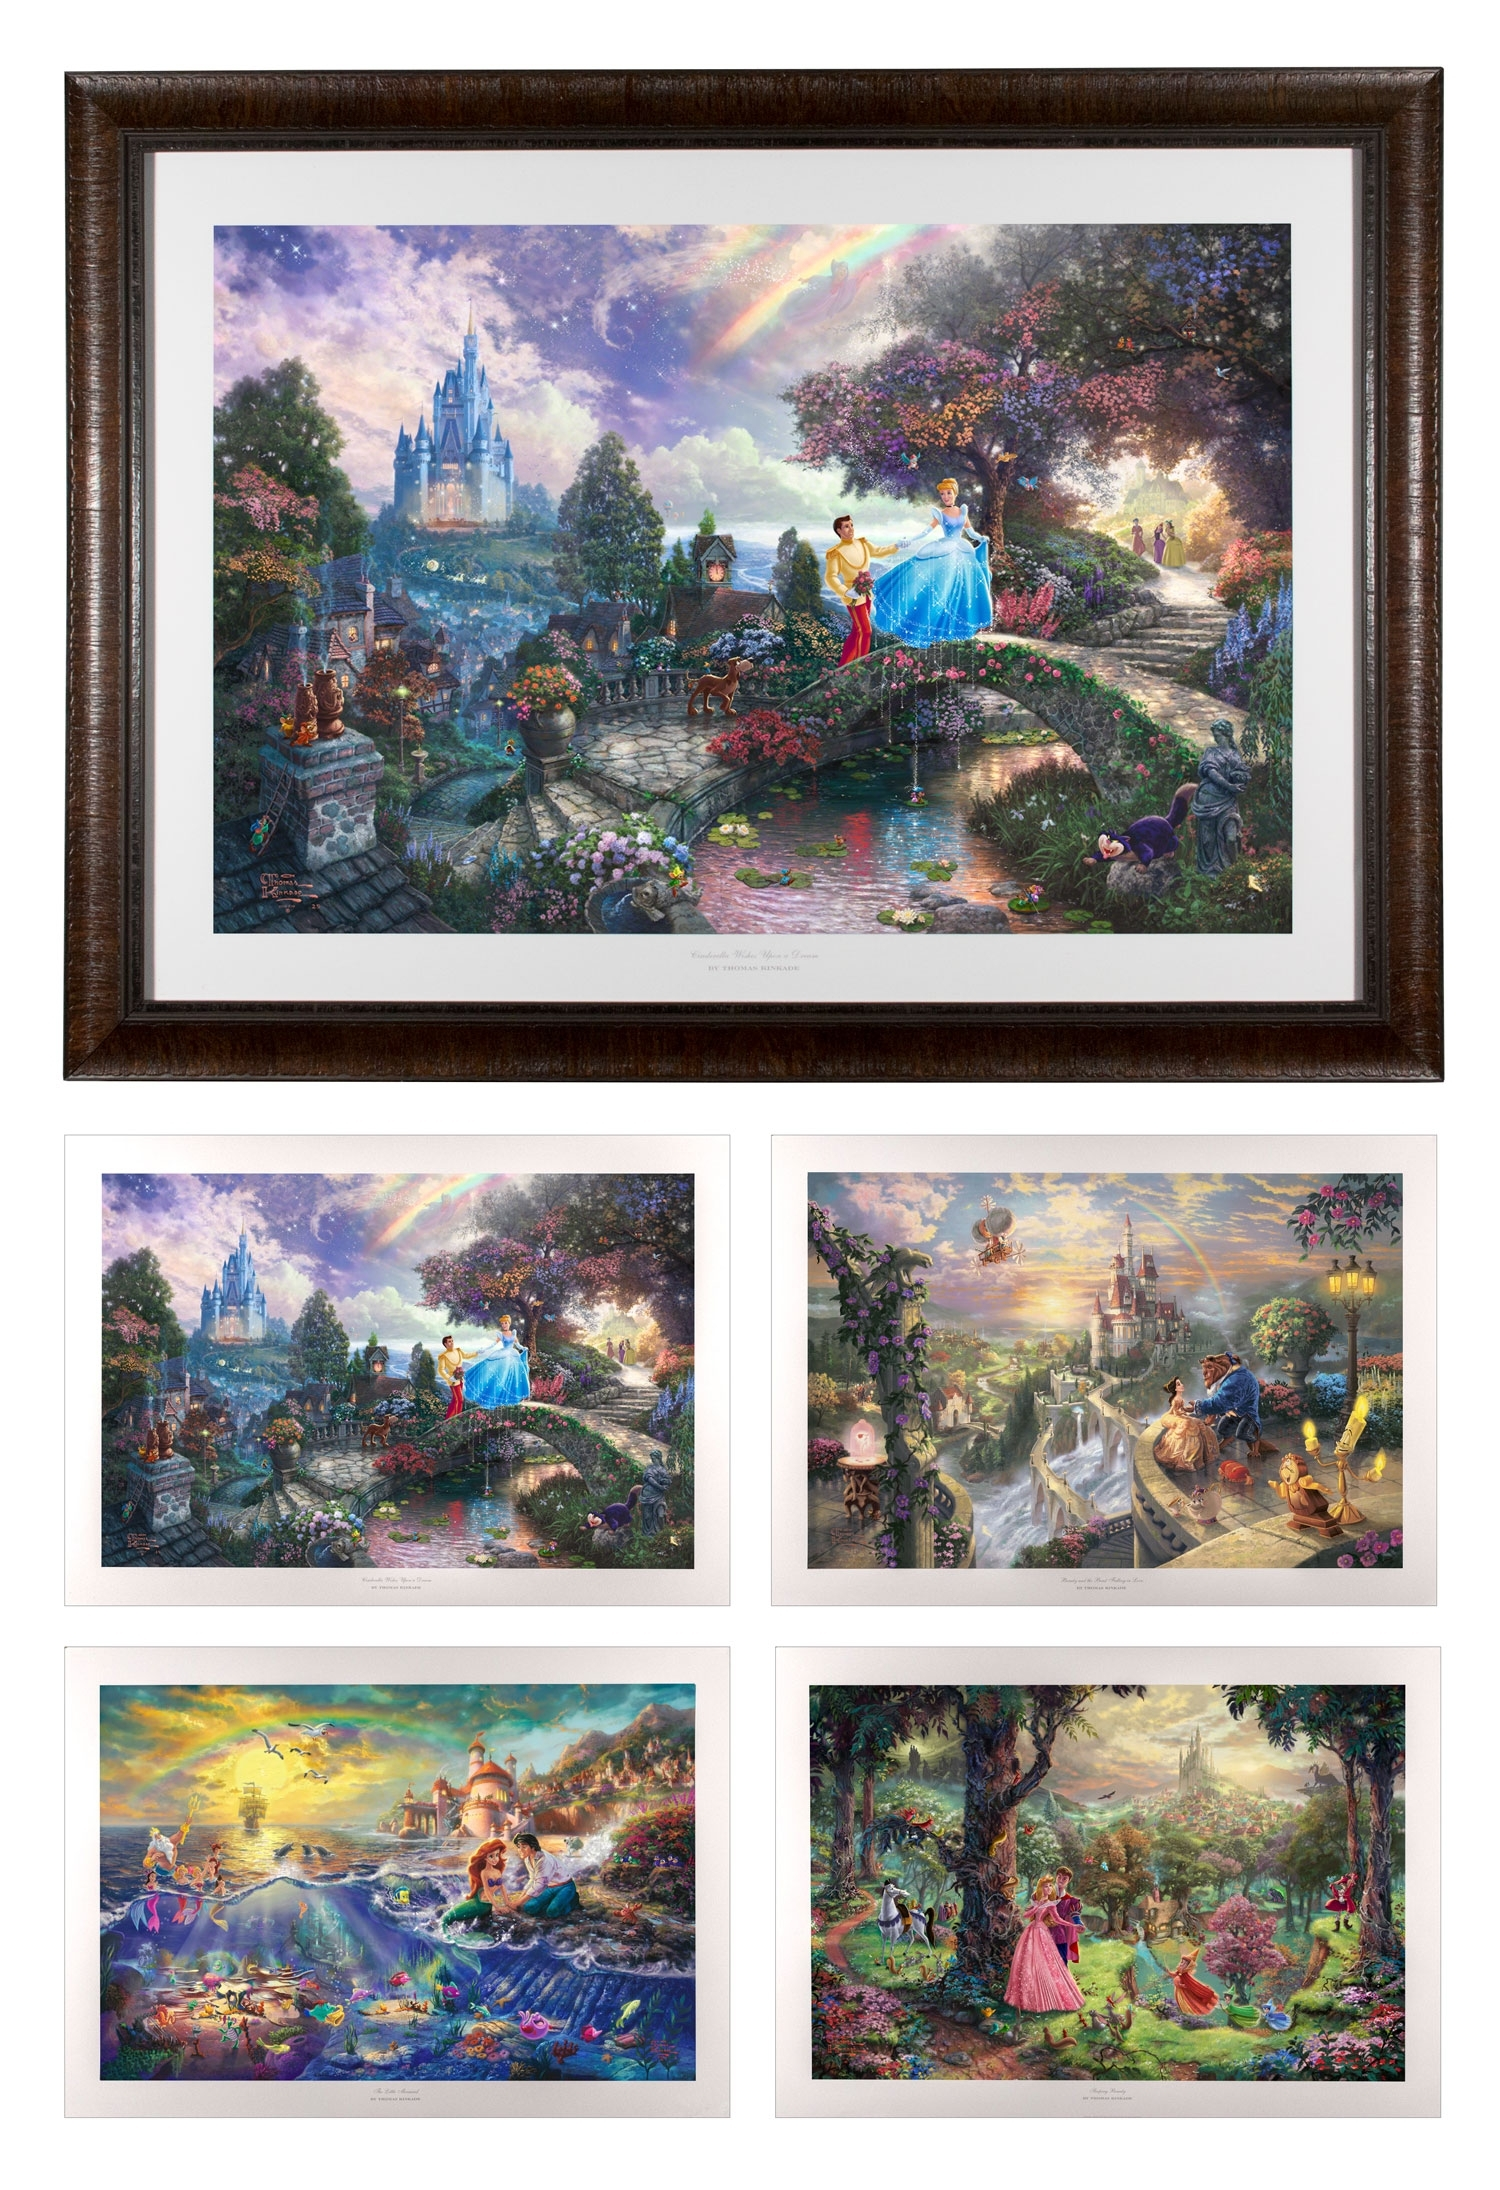 Ez Frame With Four Disney Images – 26? X 35? Framed Prints (Rustic Intended For Most Recently Released Disney Framed Art Prints (Gallery 6 of 15)